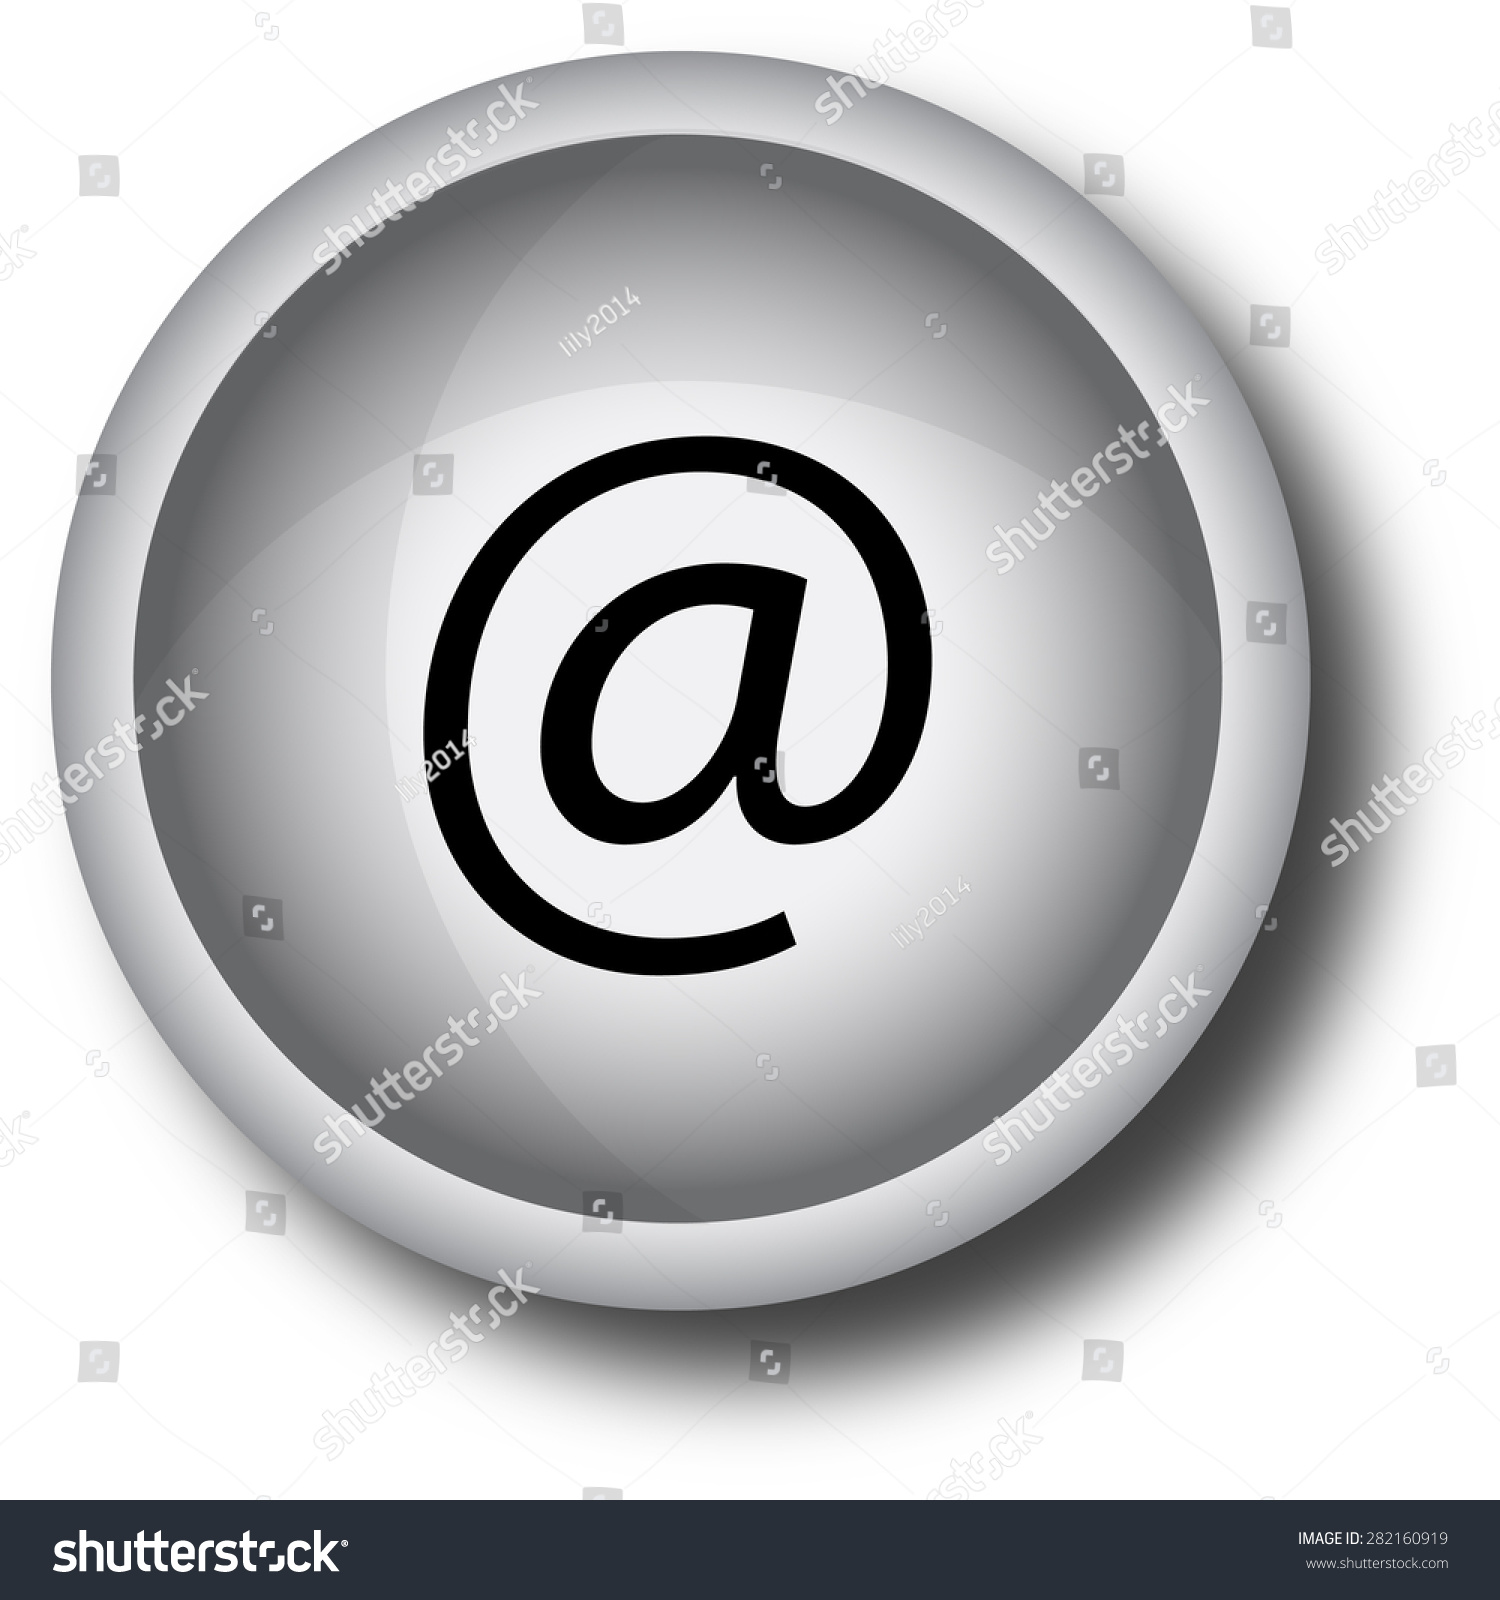 Email internet icon button stock illustration 282160919 shutterstock e mail internet icon button biocorpaavc